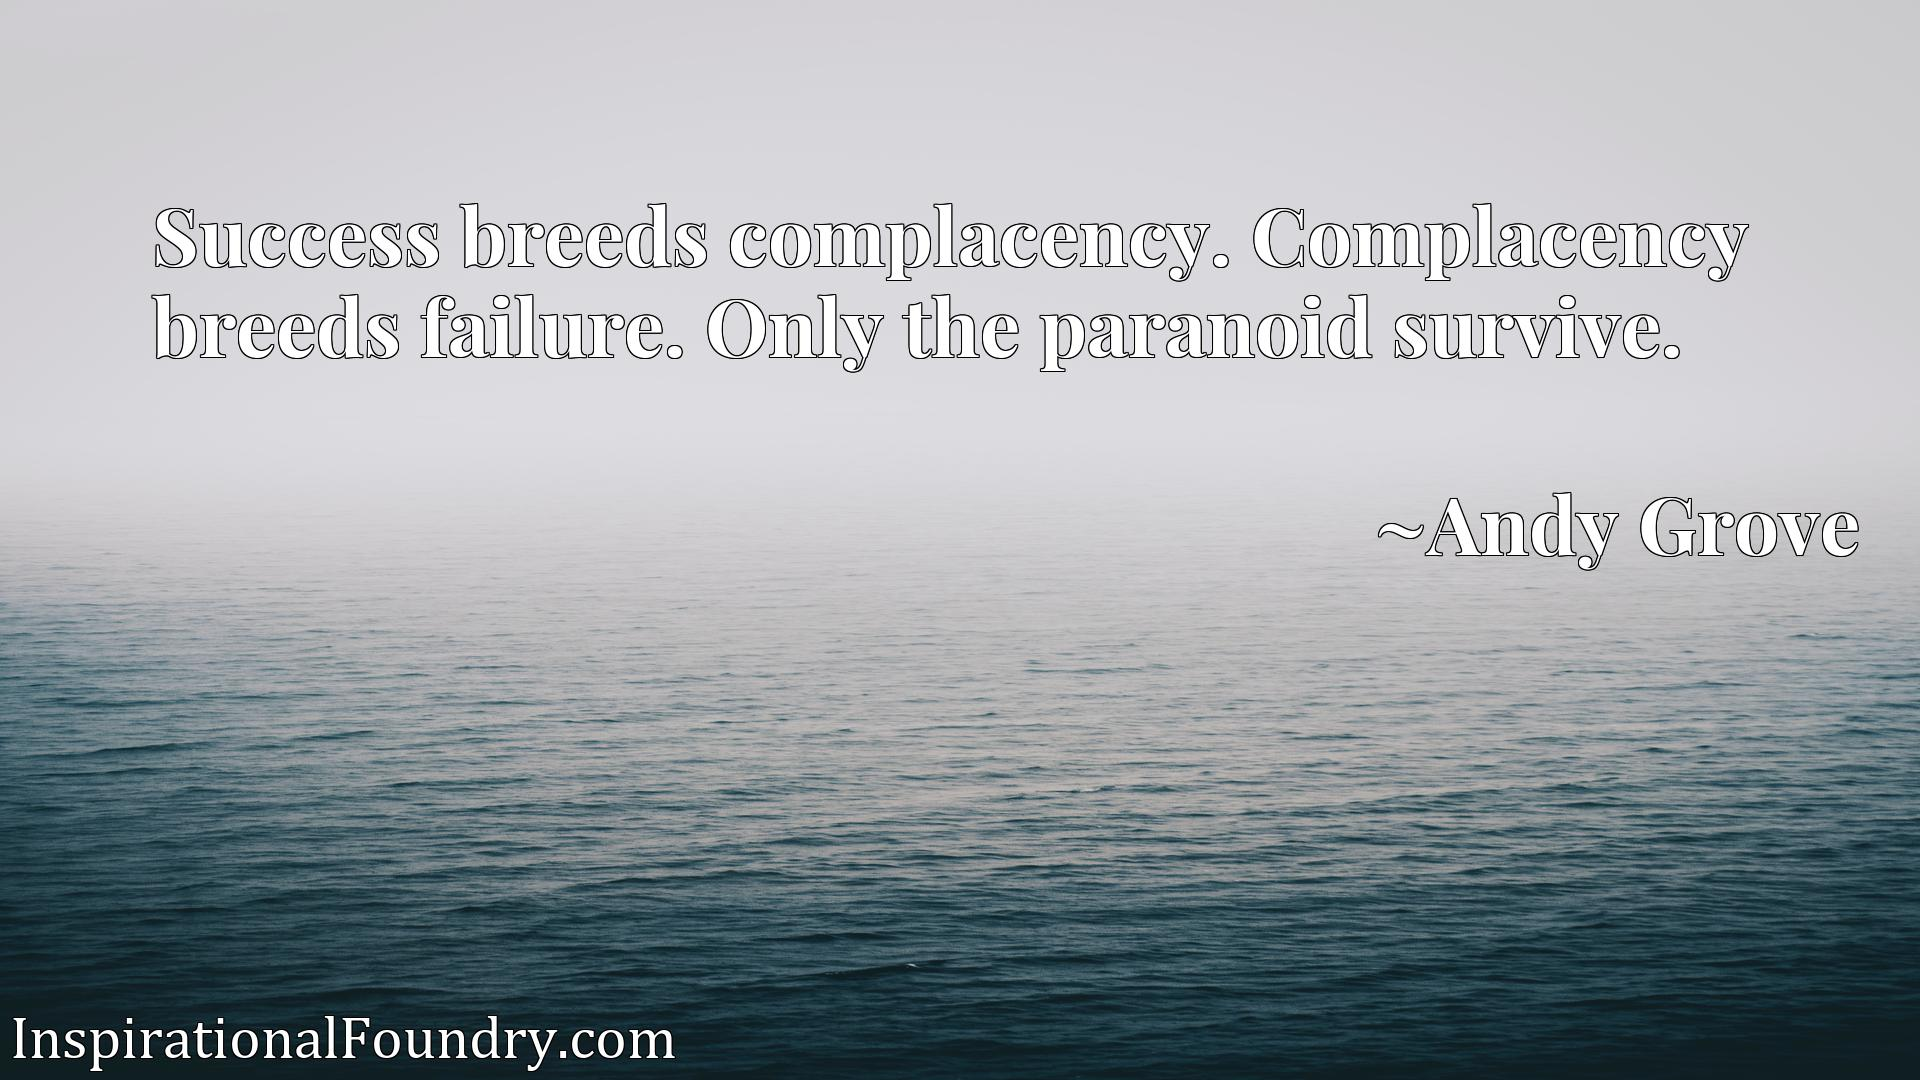 Success breeds complacency. Complacency breeds failure. Only the paranoid survive.